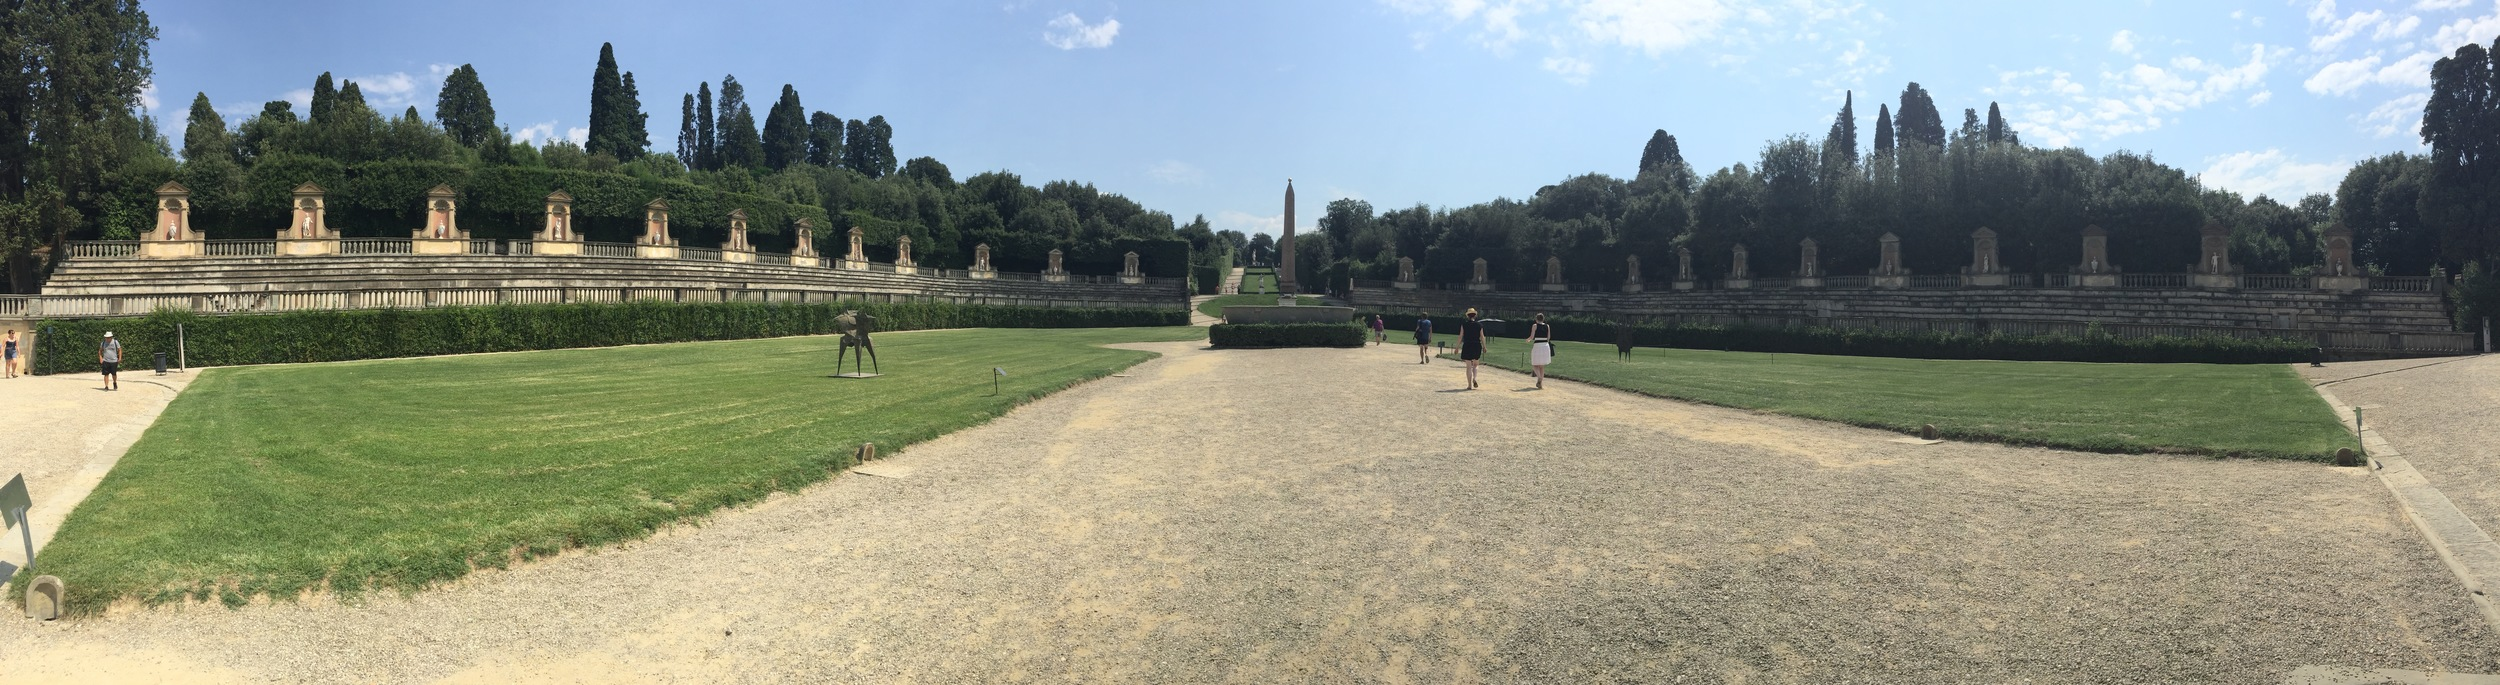 Panoramic picture of the amphitheater